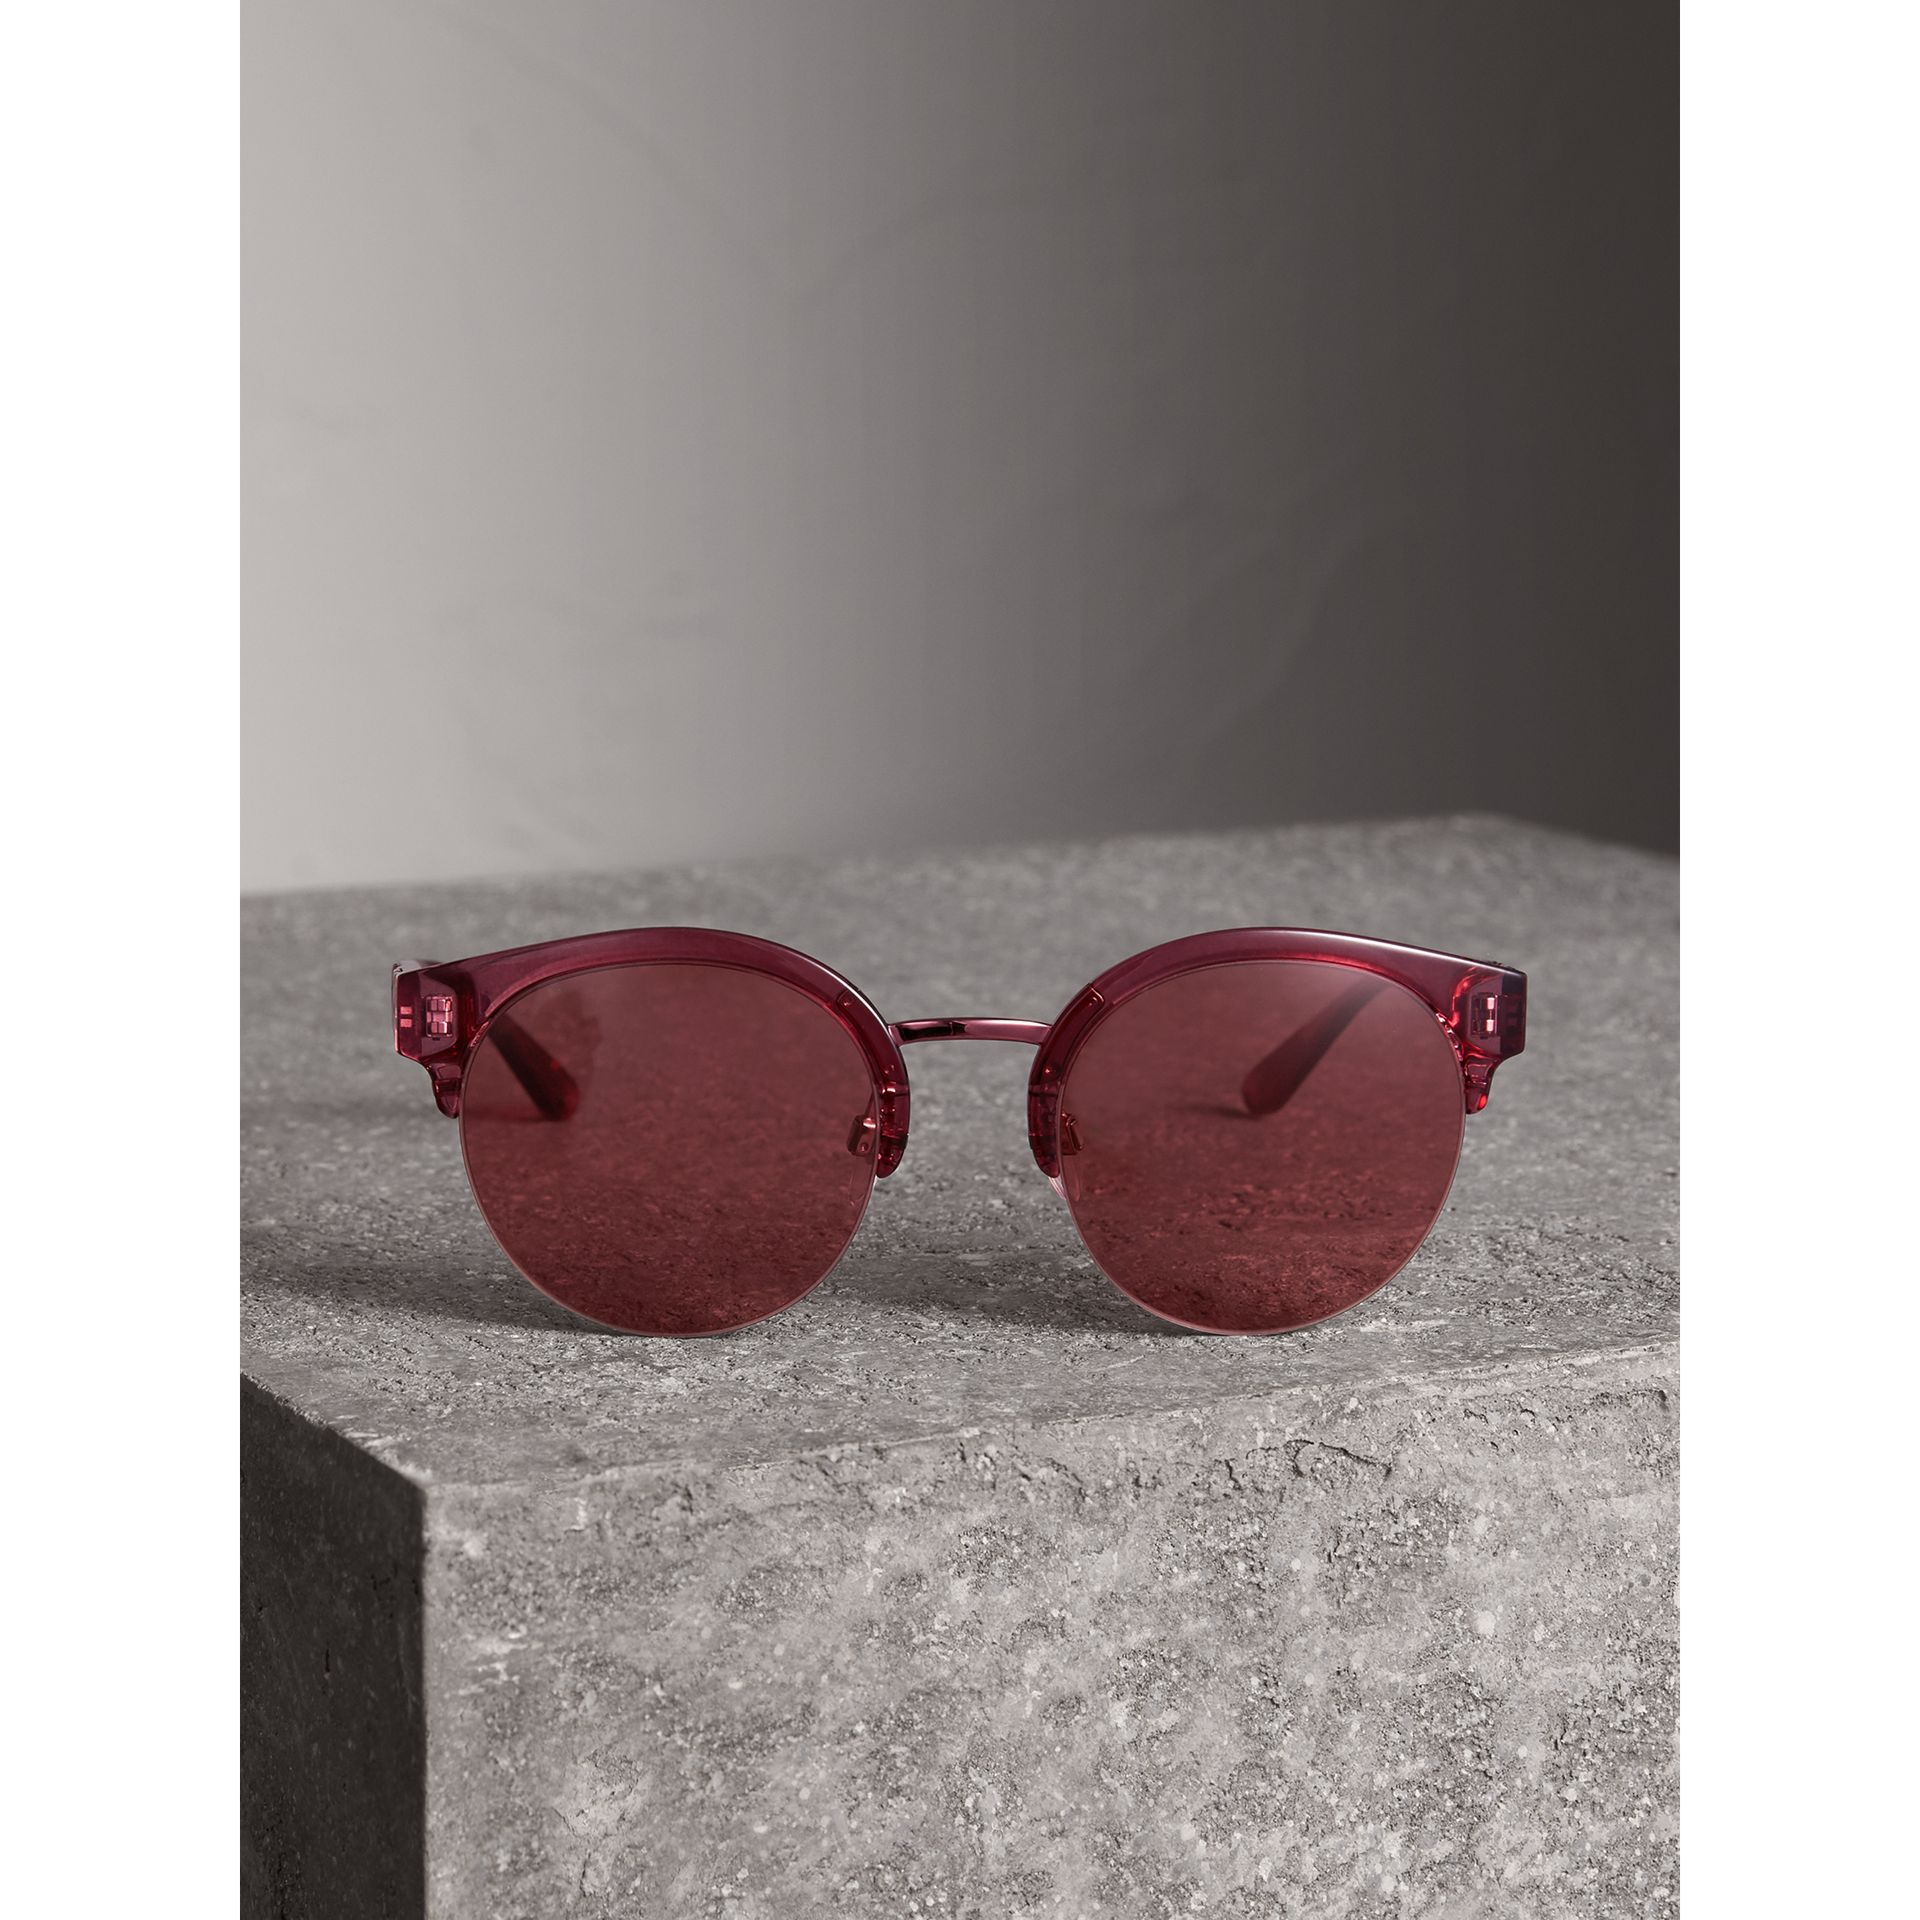 Check Detail Round Half-frame Sunglasses in Burgundy - Women | Burberry United States - gallery image 3